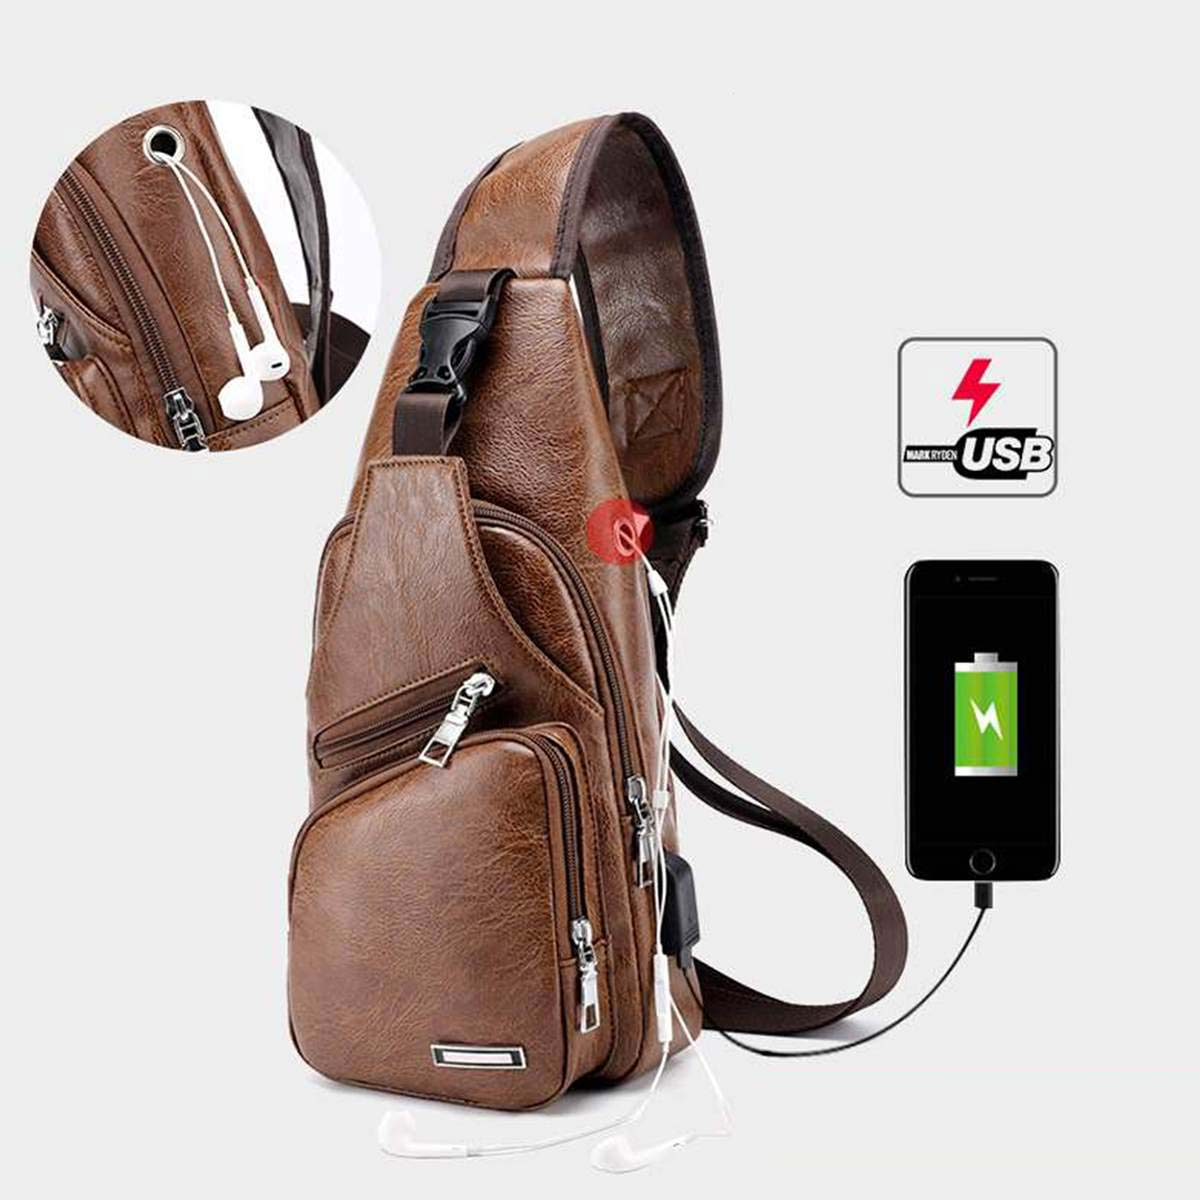 Crossbody Shoulder Bag with USB Charging